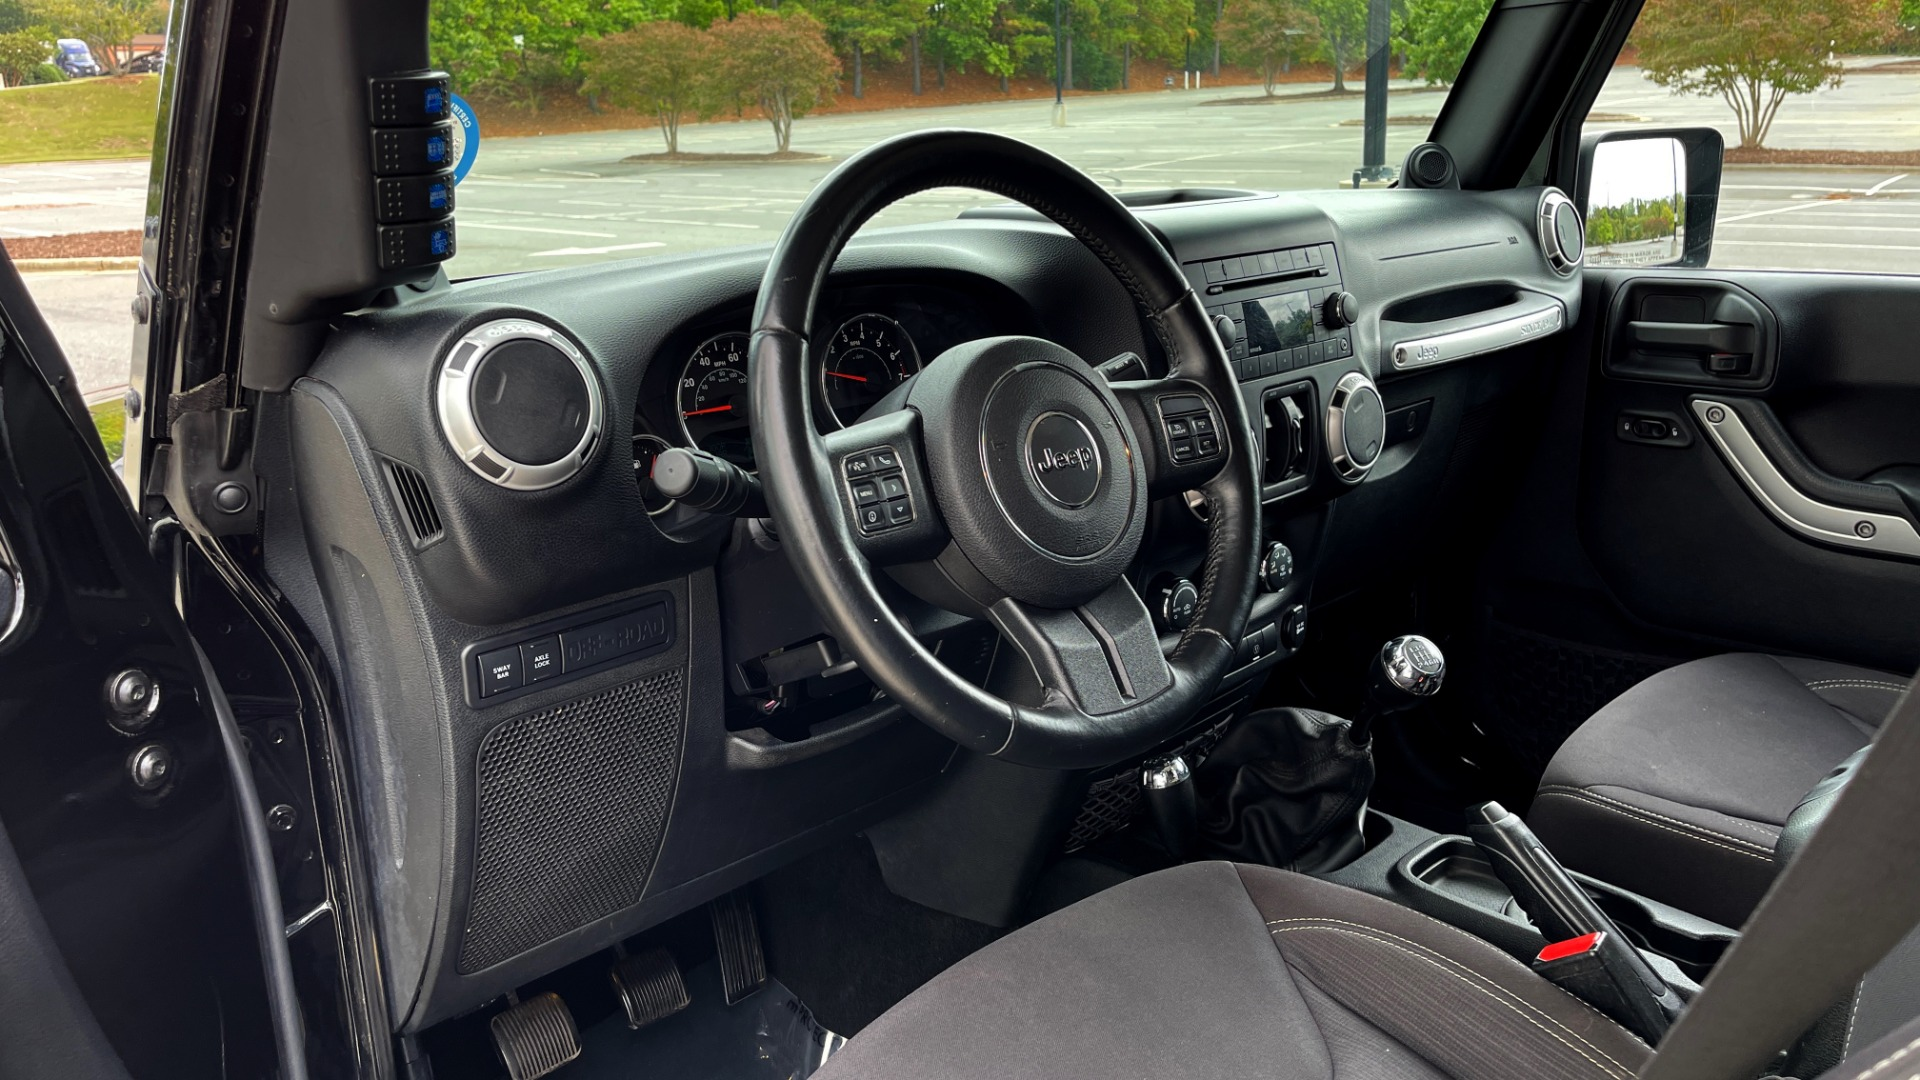 Used 2013 Jeep WRANGLER UNLIMITED RUBICON 4X4 / 3.6L V6 / 6-SPD MAN / DUAL-TOP / AIR COND for sale $32,900 at Formula Imports in Charlotte NC 28227 35